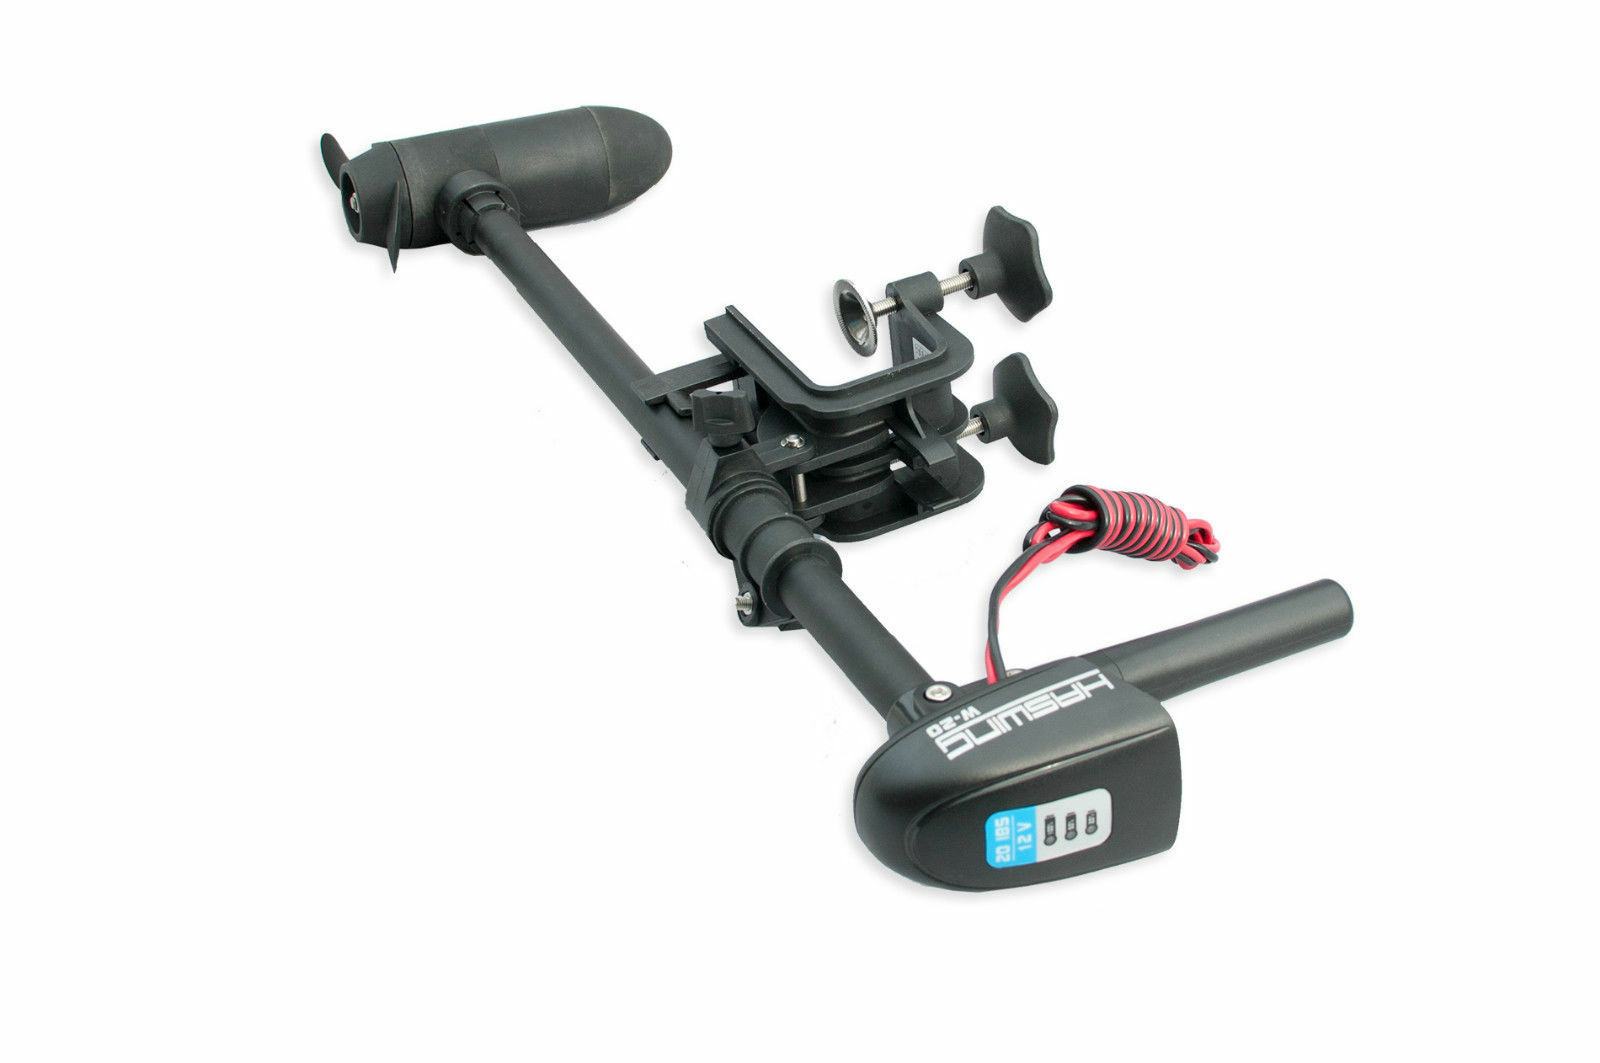 Trolling Motor 20 Lbs Electric 12 Volts With Battery